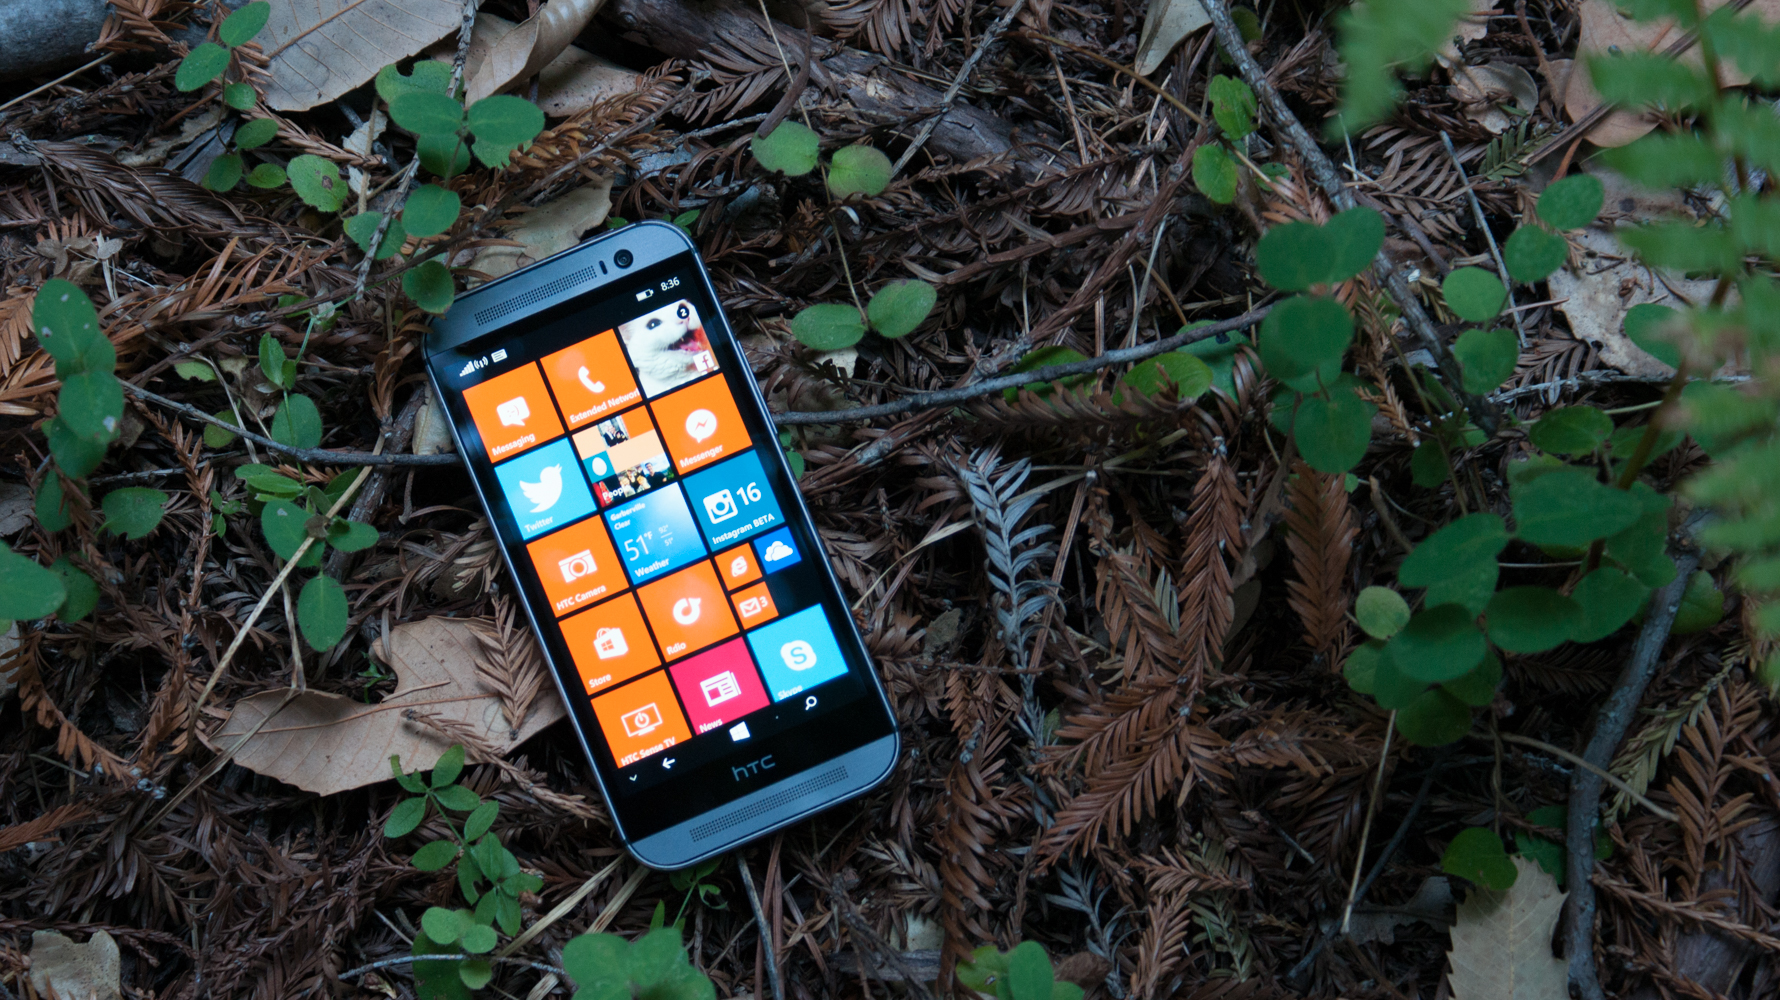 HTC One M8 Windows Phone 8 review: The body of Iron Man with the soul of Aquaman